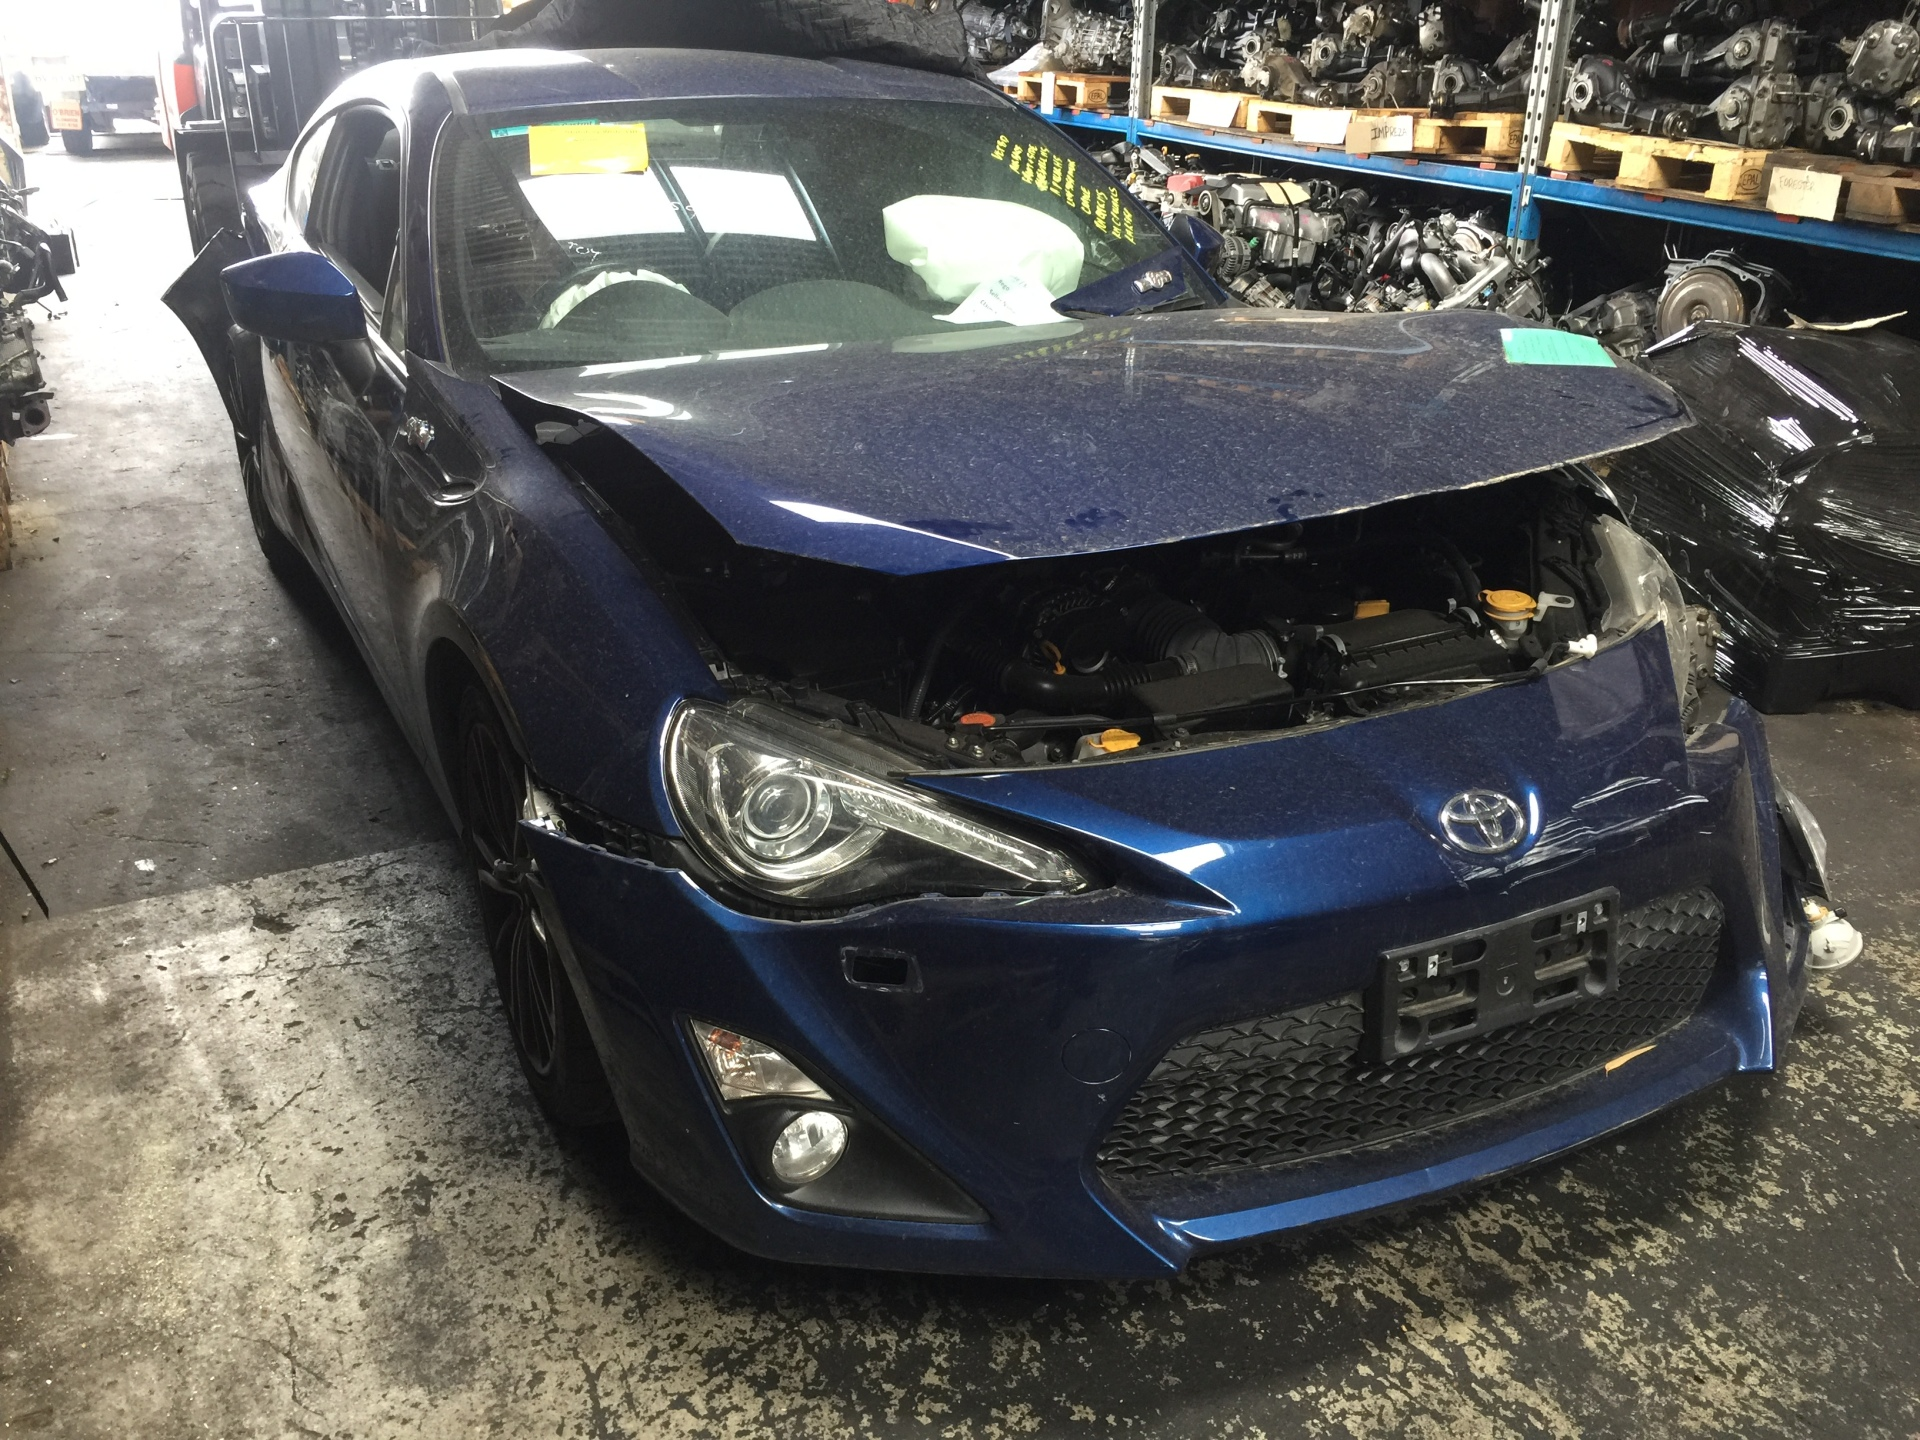 Toyota Wrecking 86 Coupe FA20 6 Speed MT Spare Parts GTS